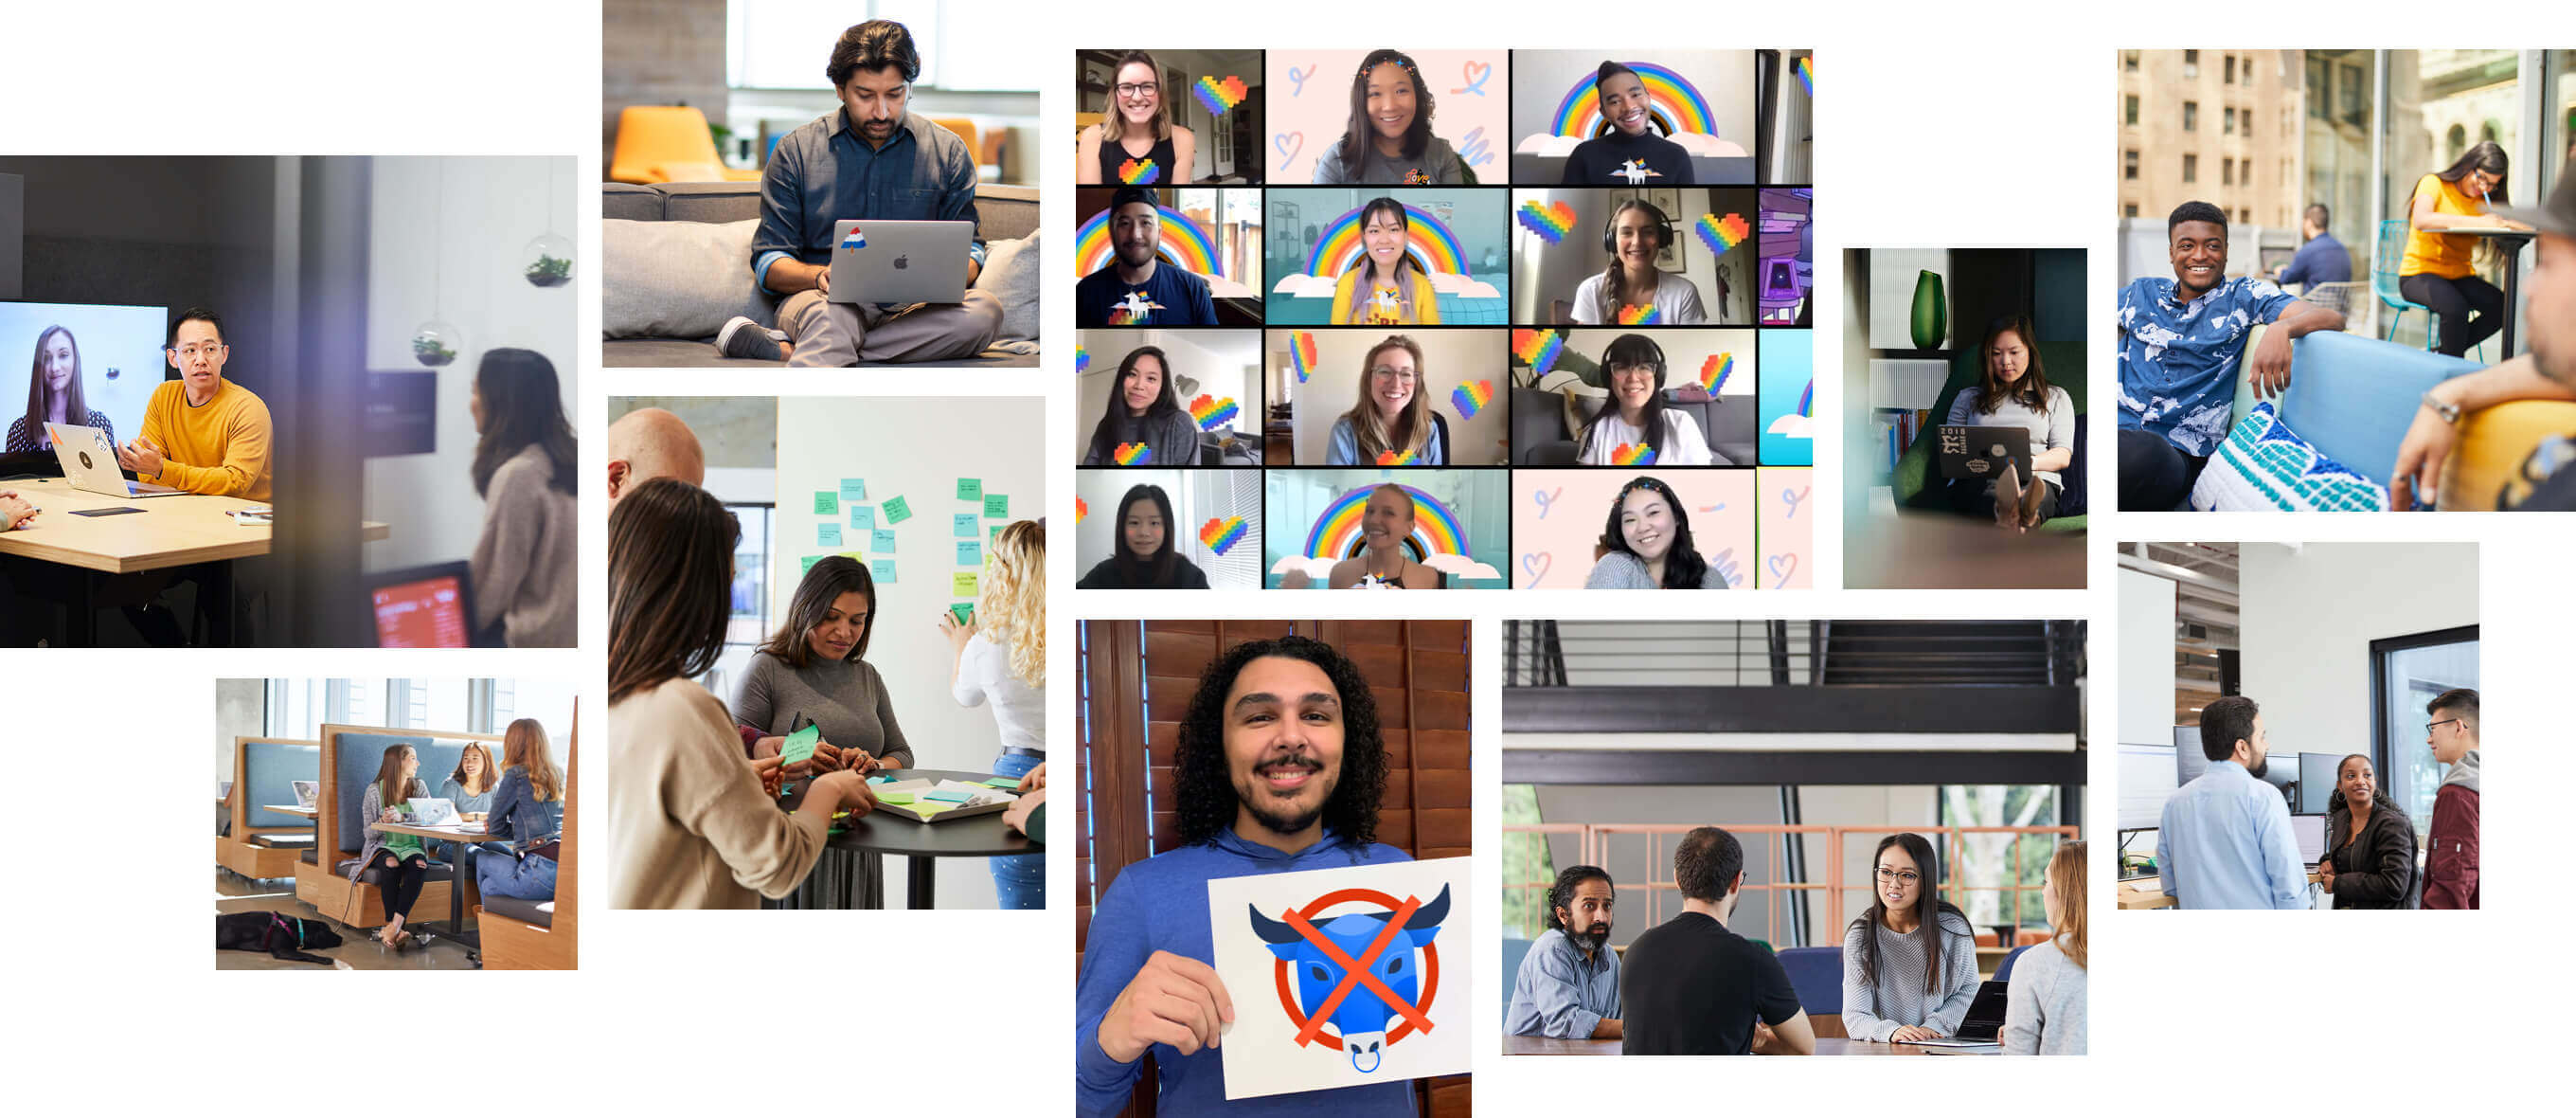 Photo collage of Atlassian employees